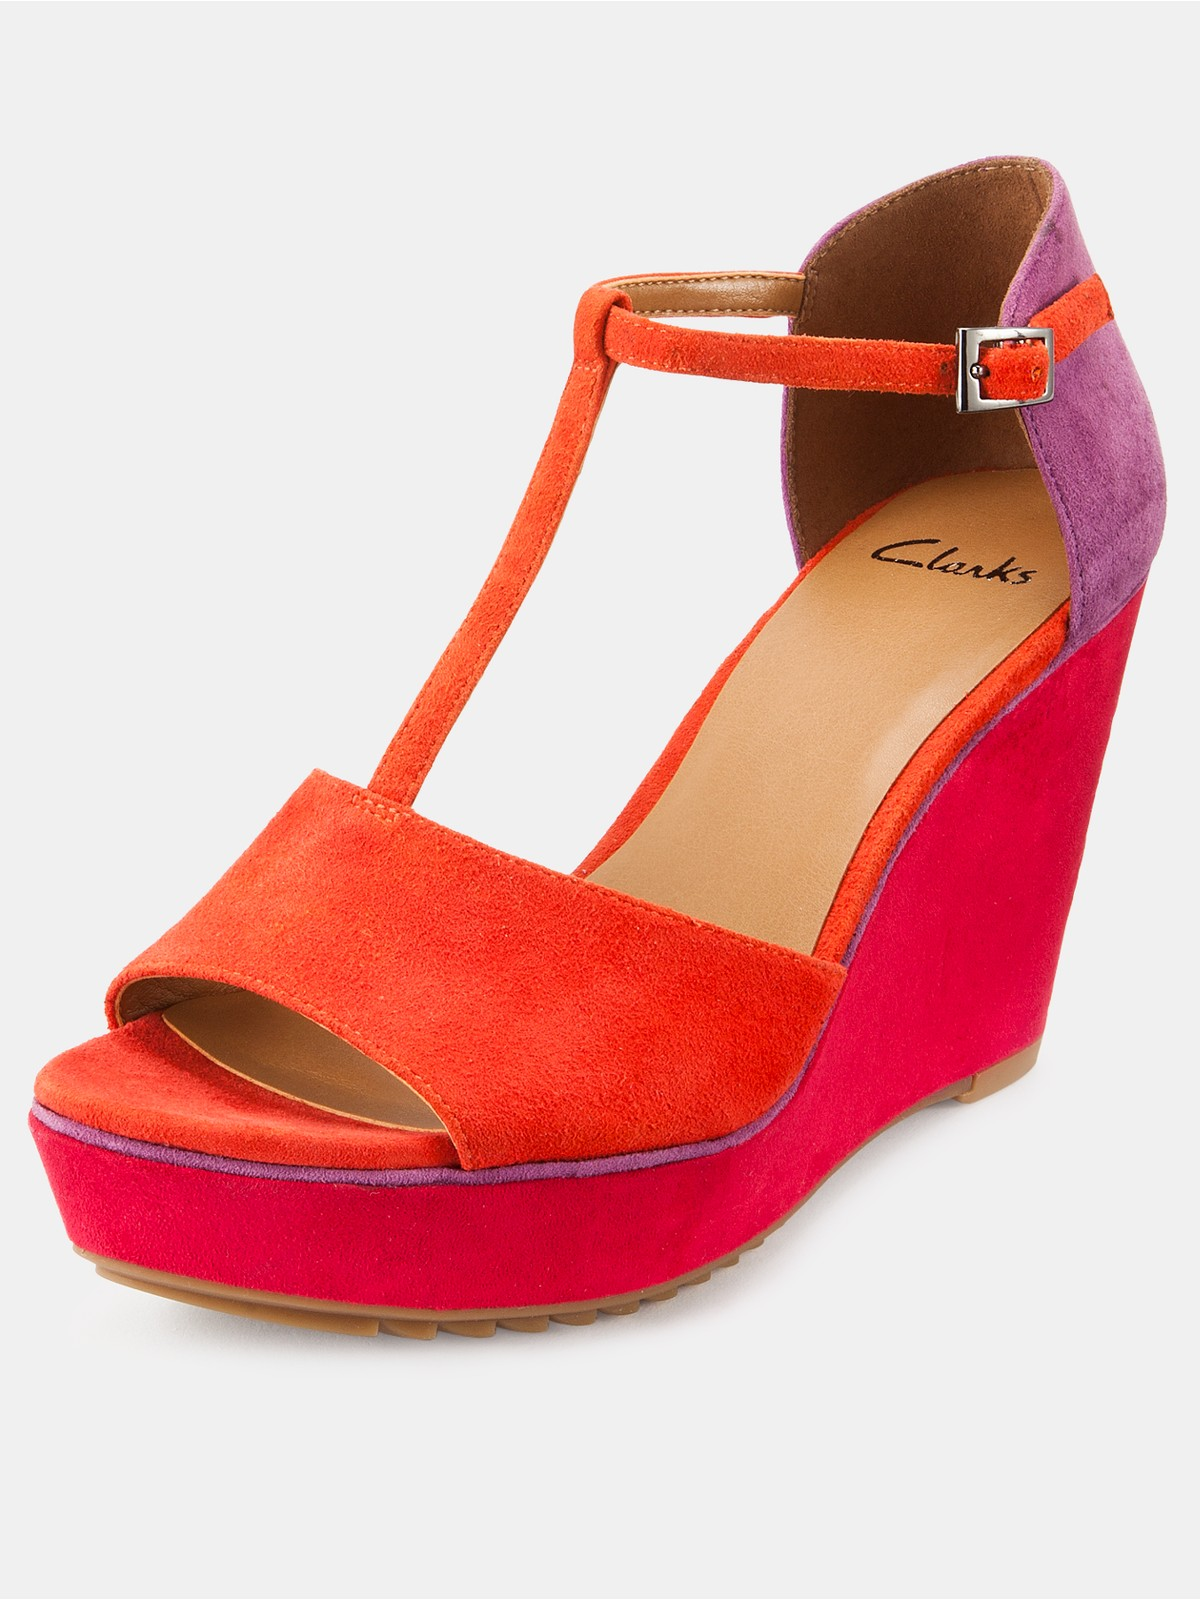 Clarks Scent Flower Wedge Sandals In Red Coral Suede Lyst